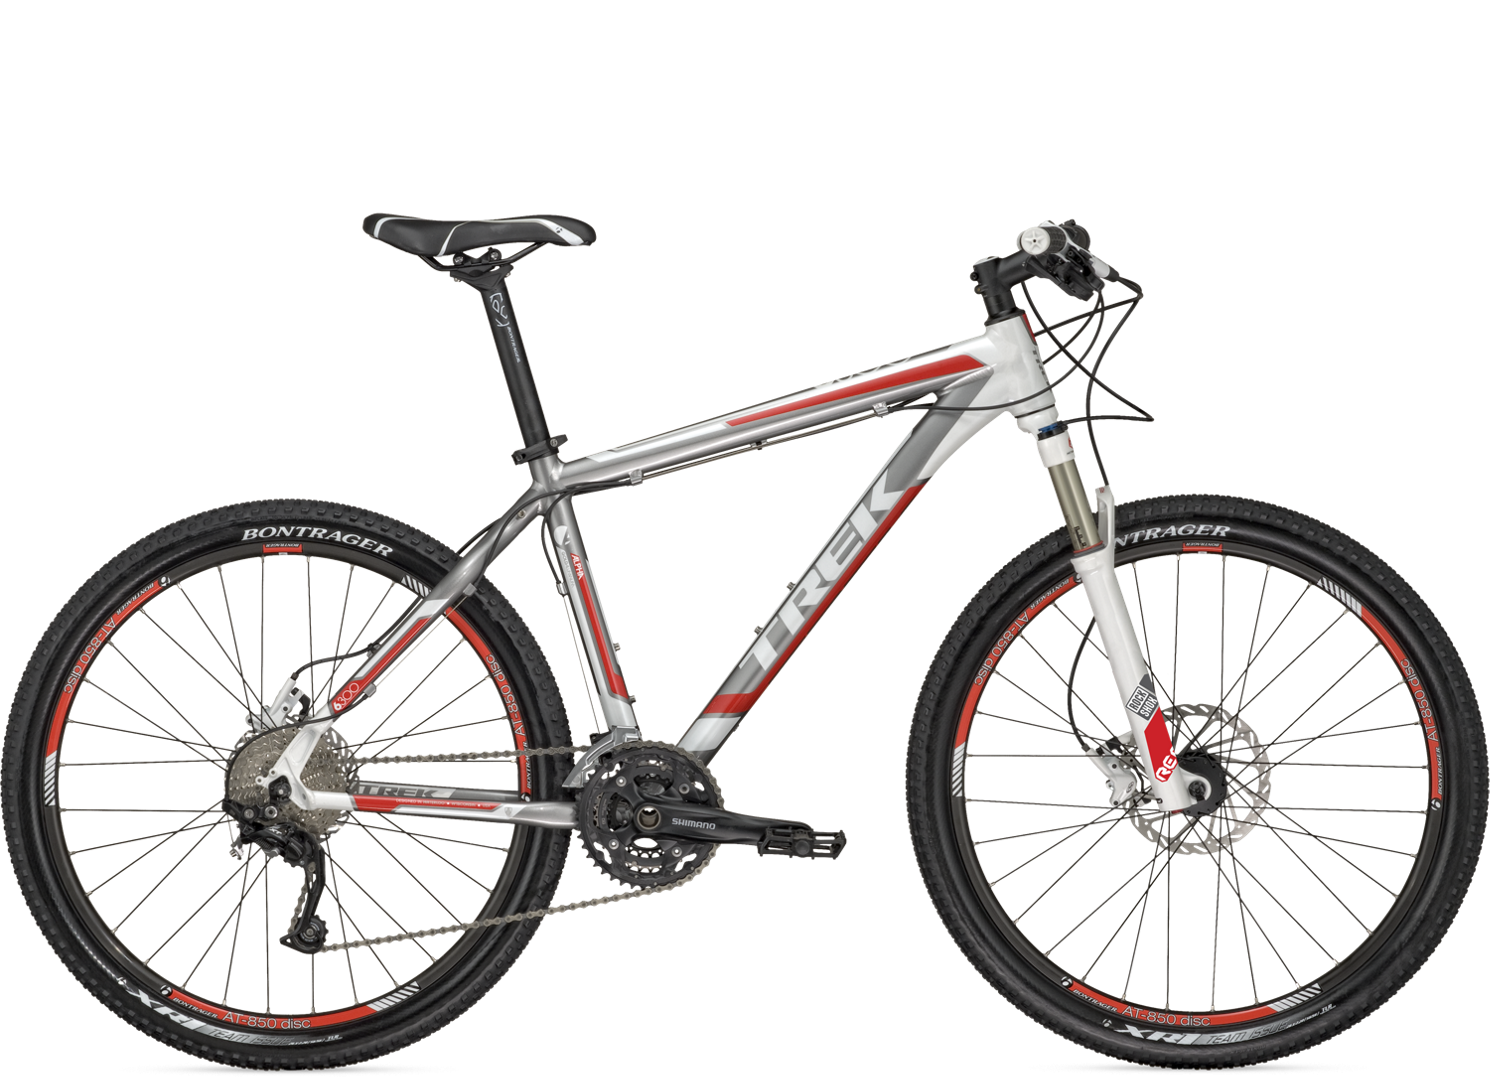 ddbd5fede82 2012 6300 - Bike Archive - Trek Bicycle